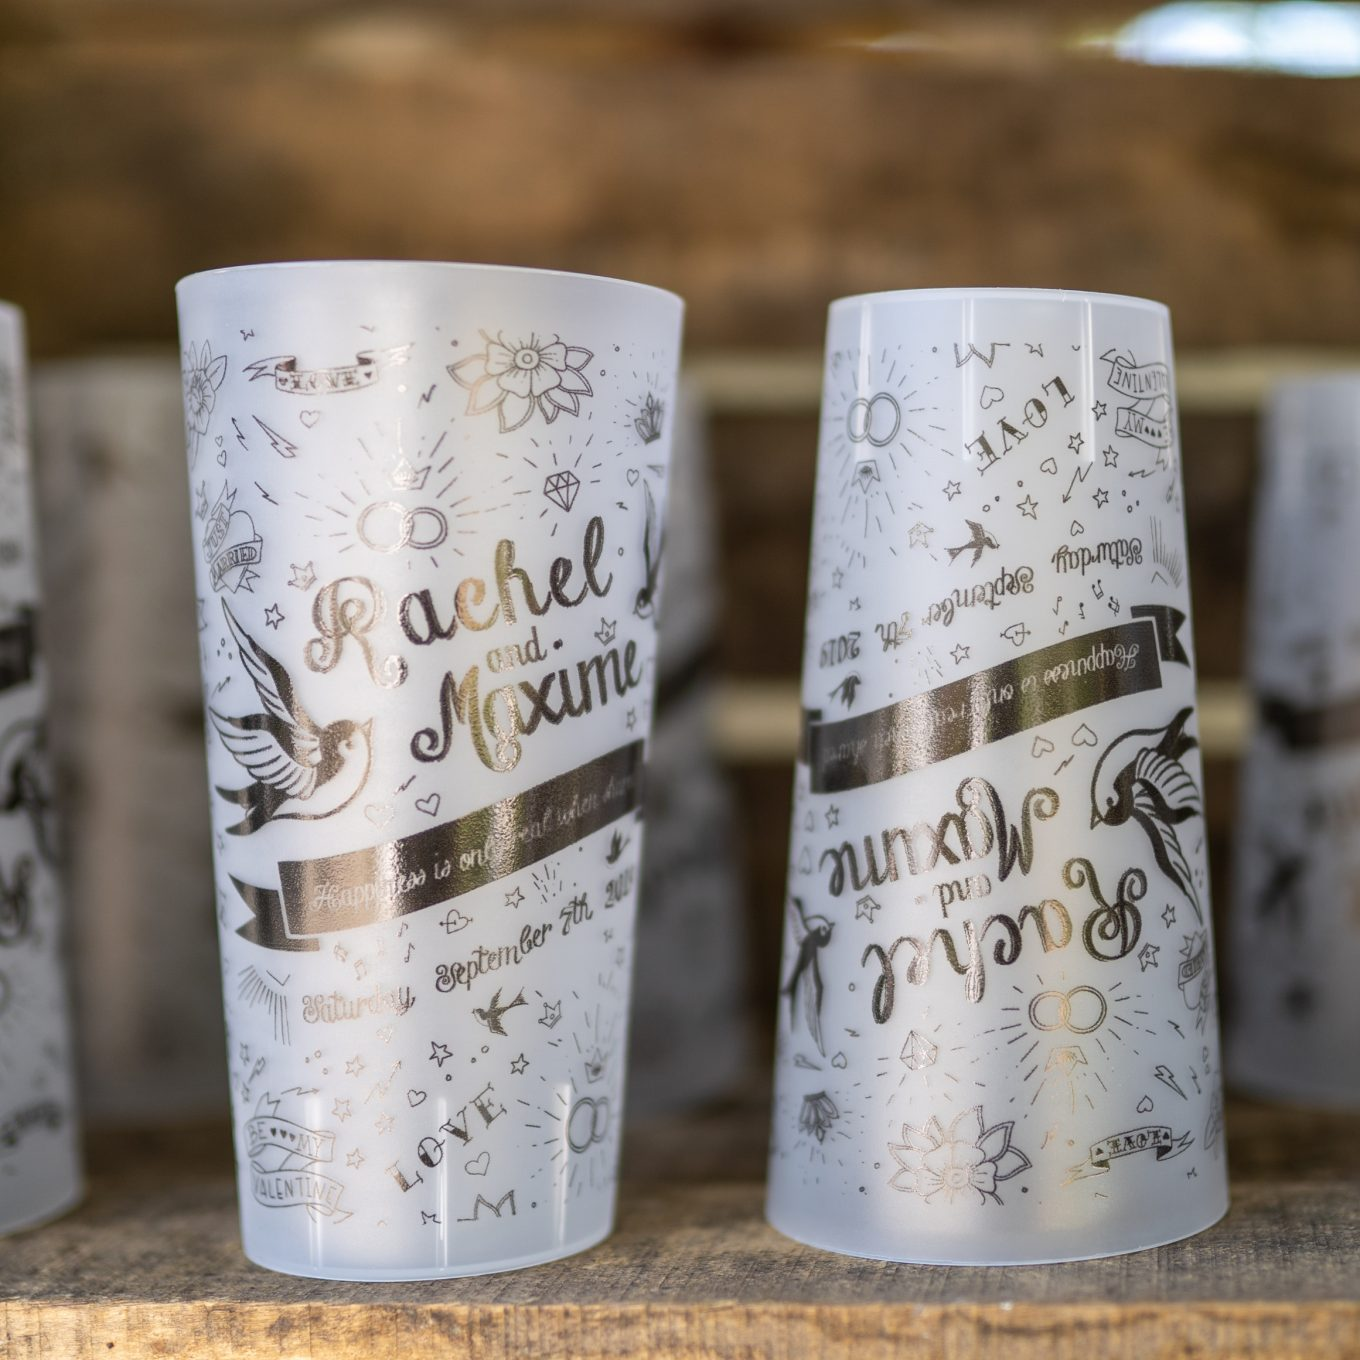 Ecocup mariage